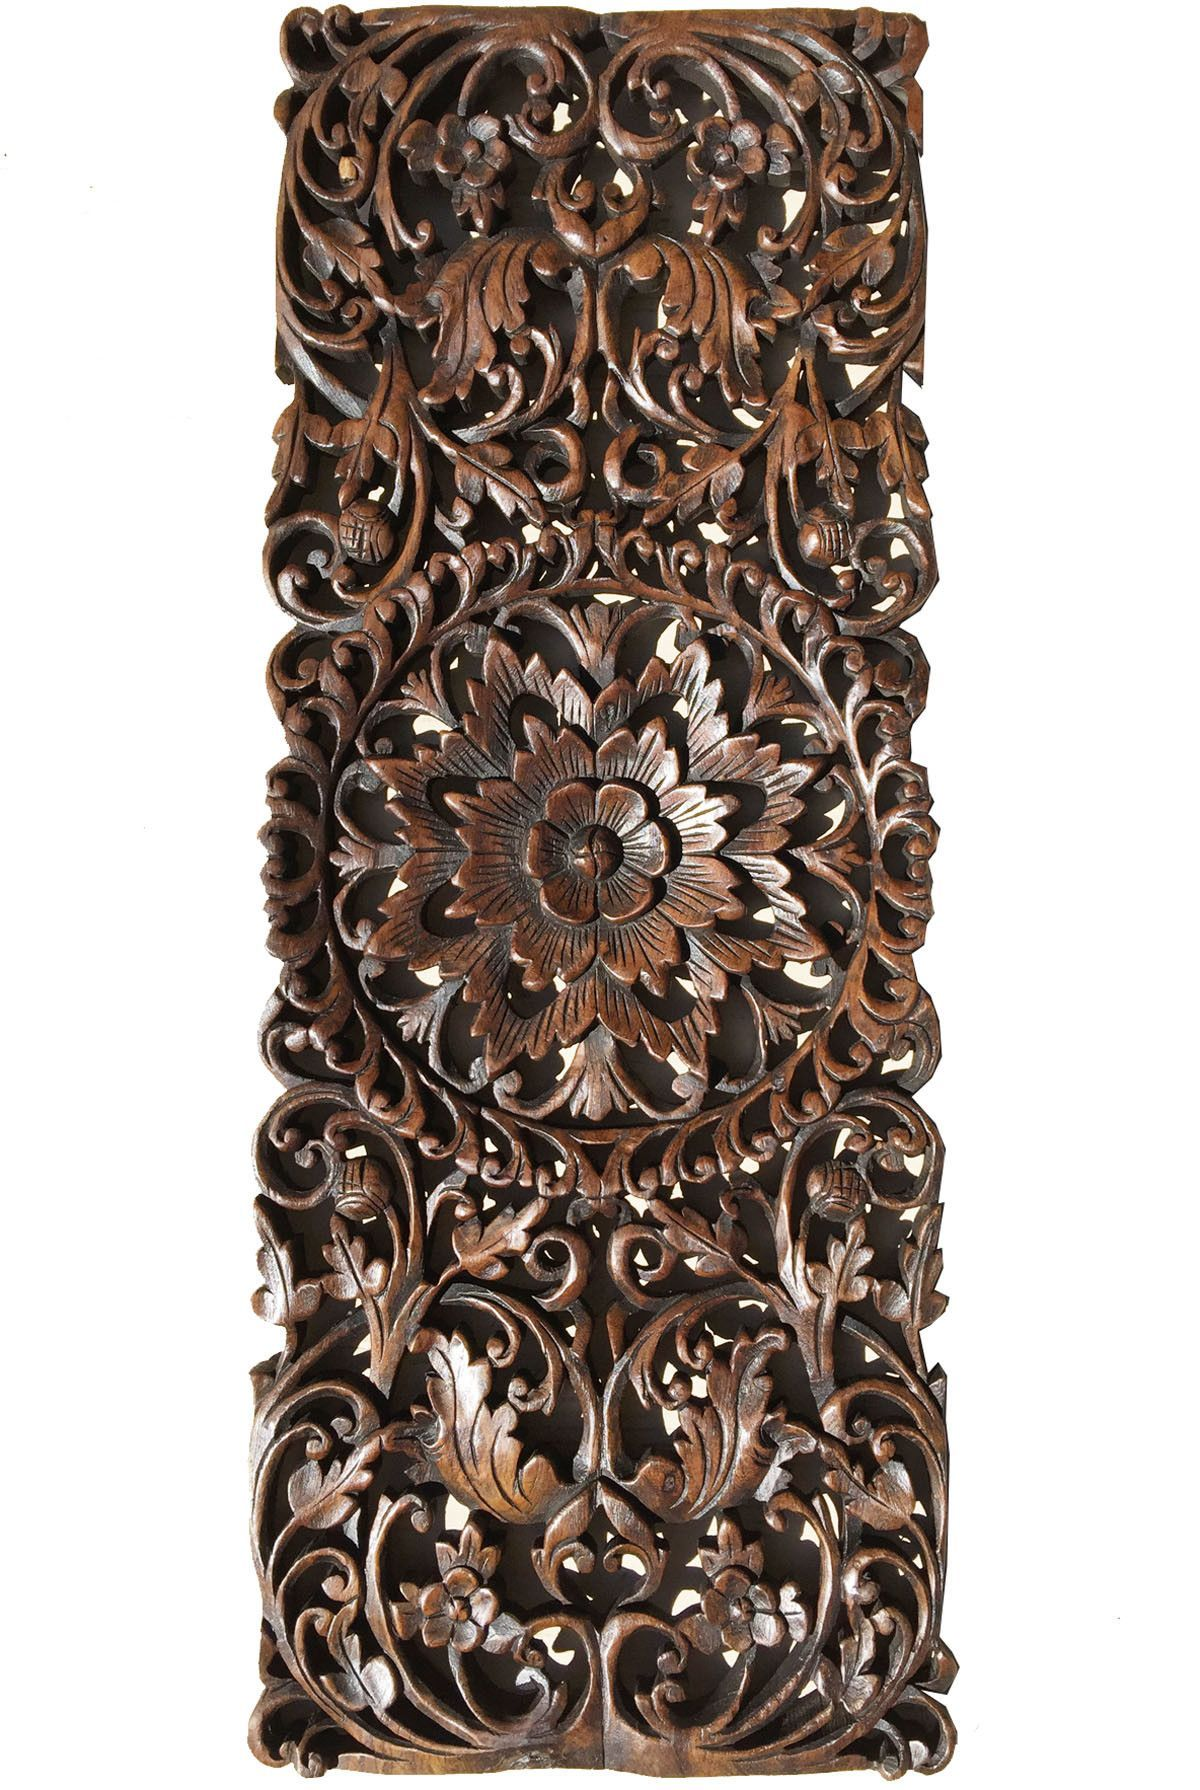 Floral Tropical Carved Wood Wall Panel. Asian Wall Art Home Decor. Large  Wood Wall